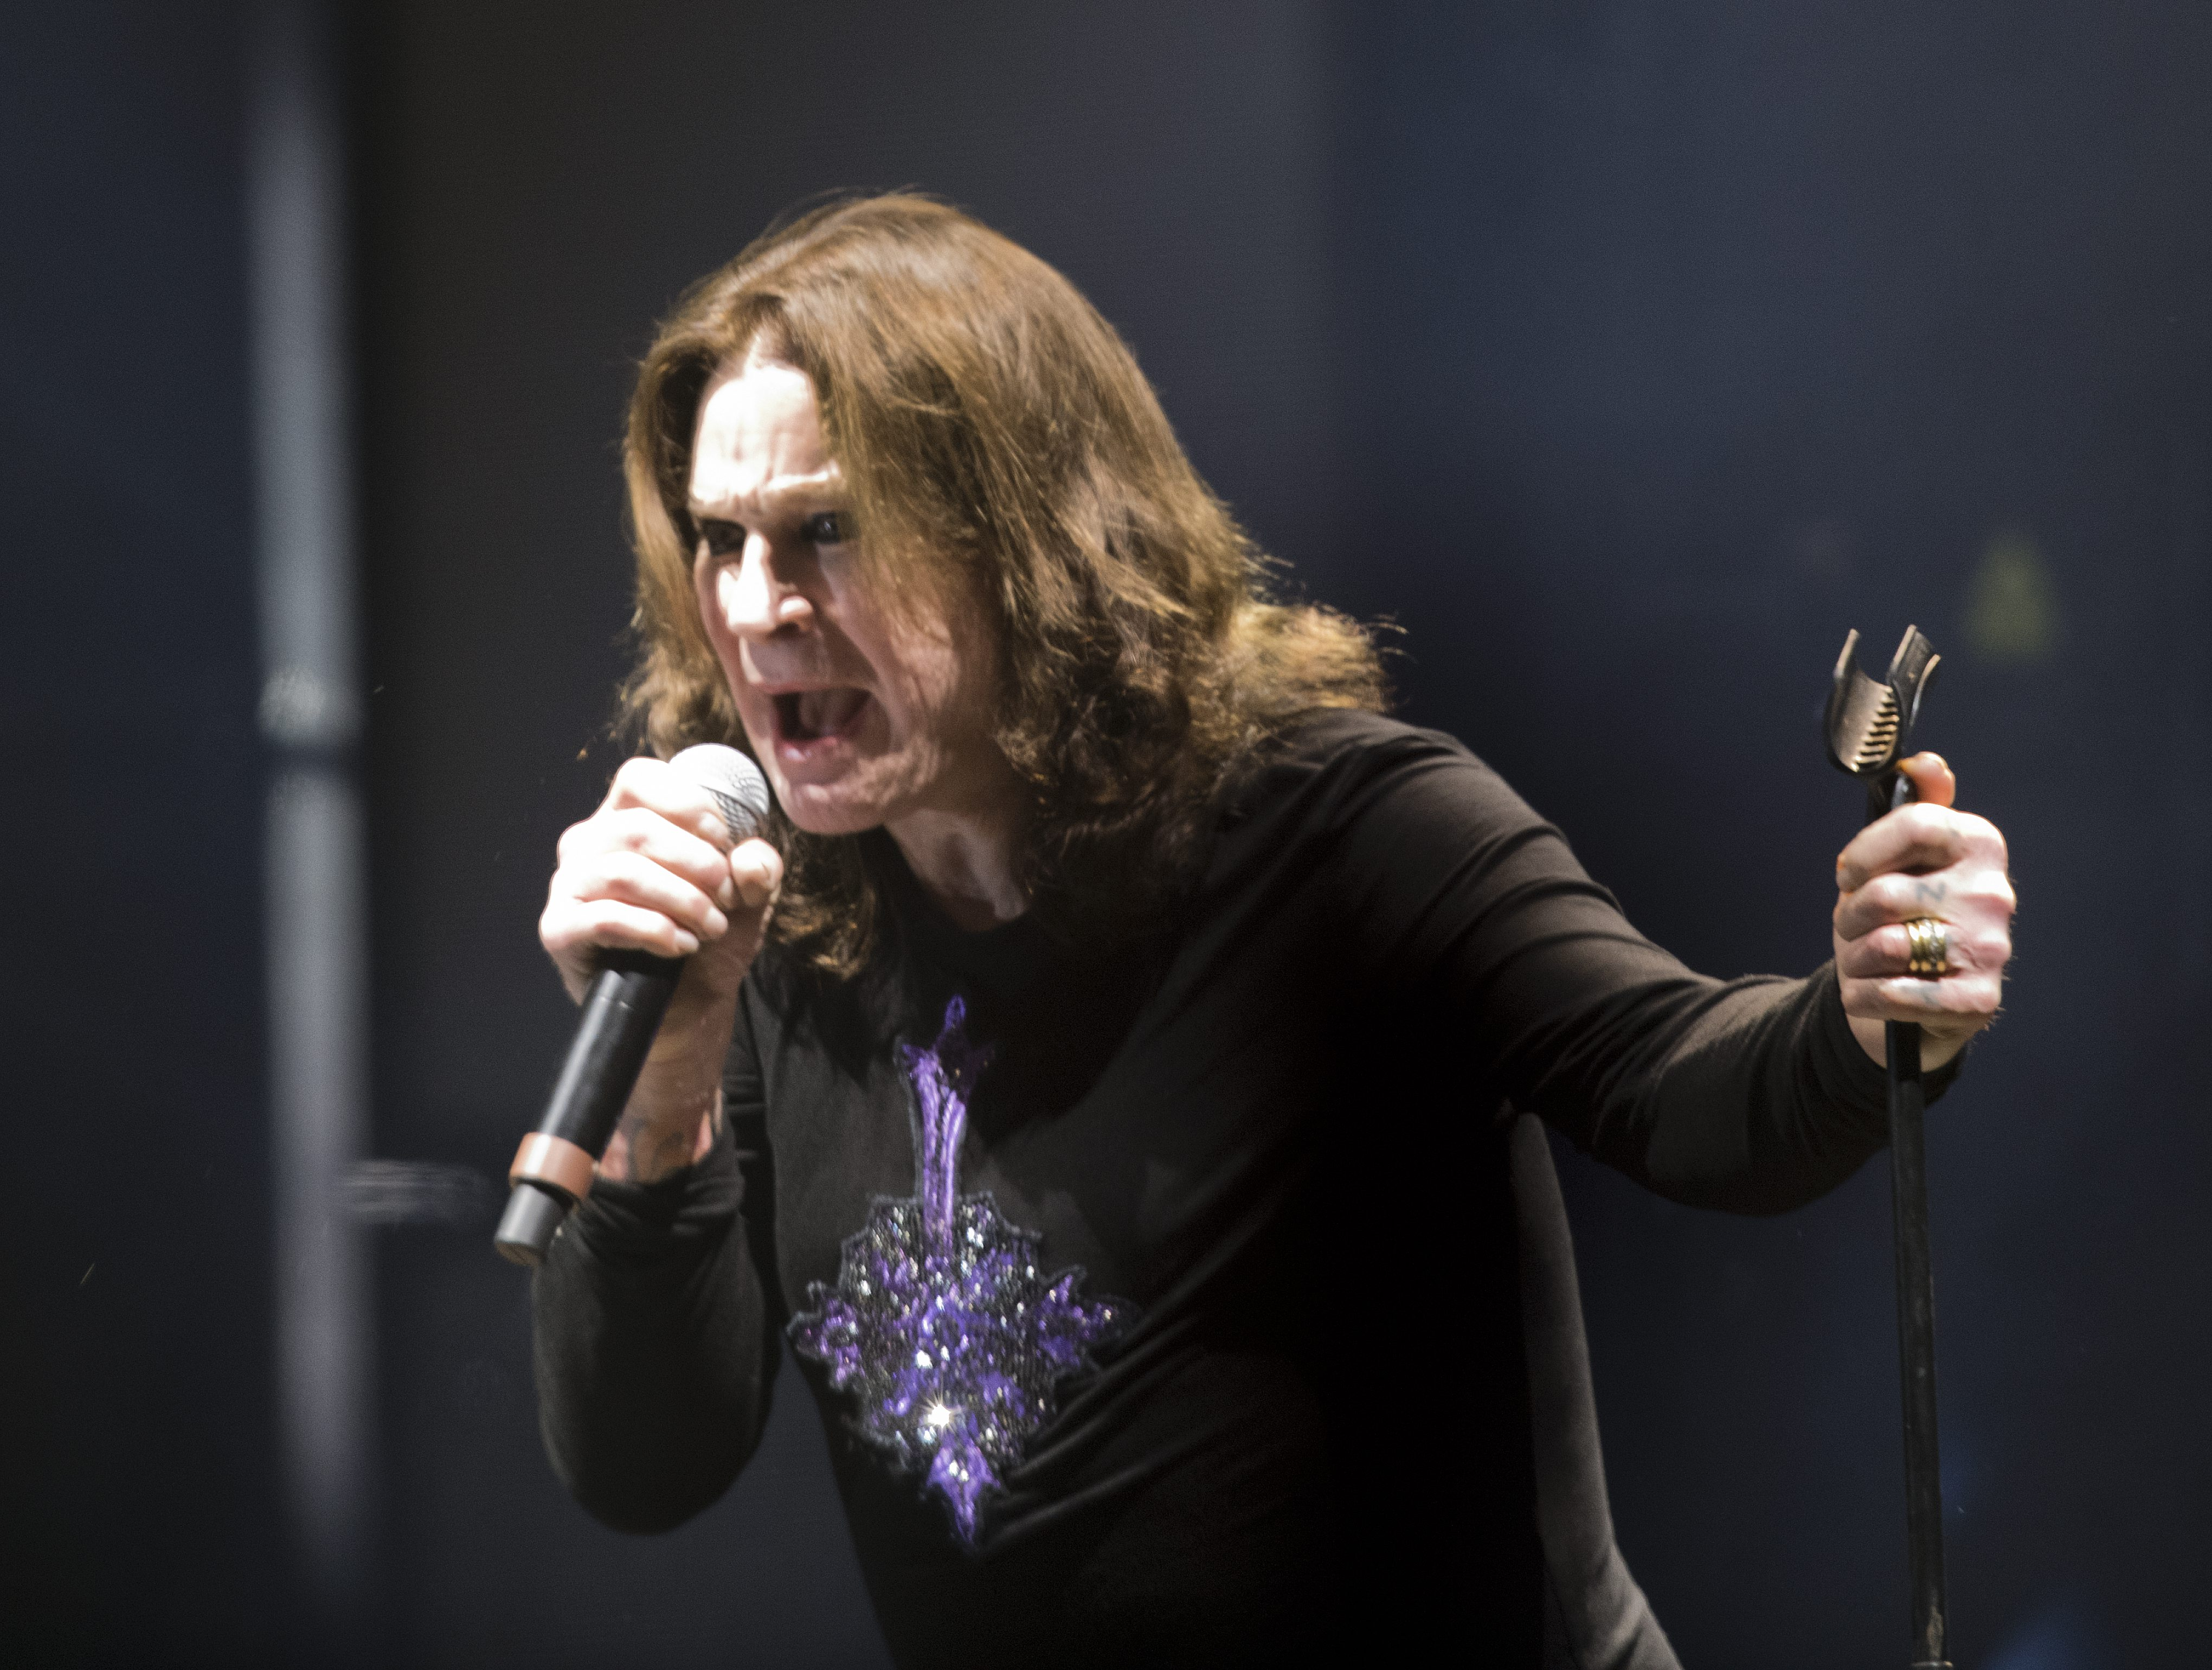 OZZY OSBOURNE Sues AEG Concert Promoter For Blackmail